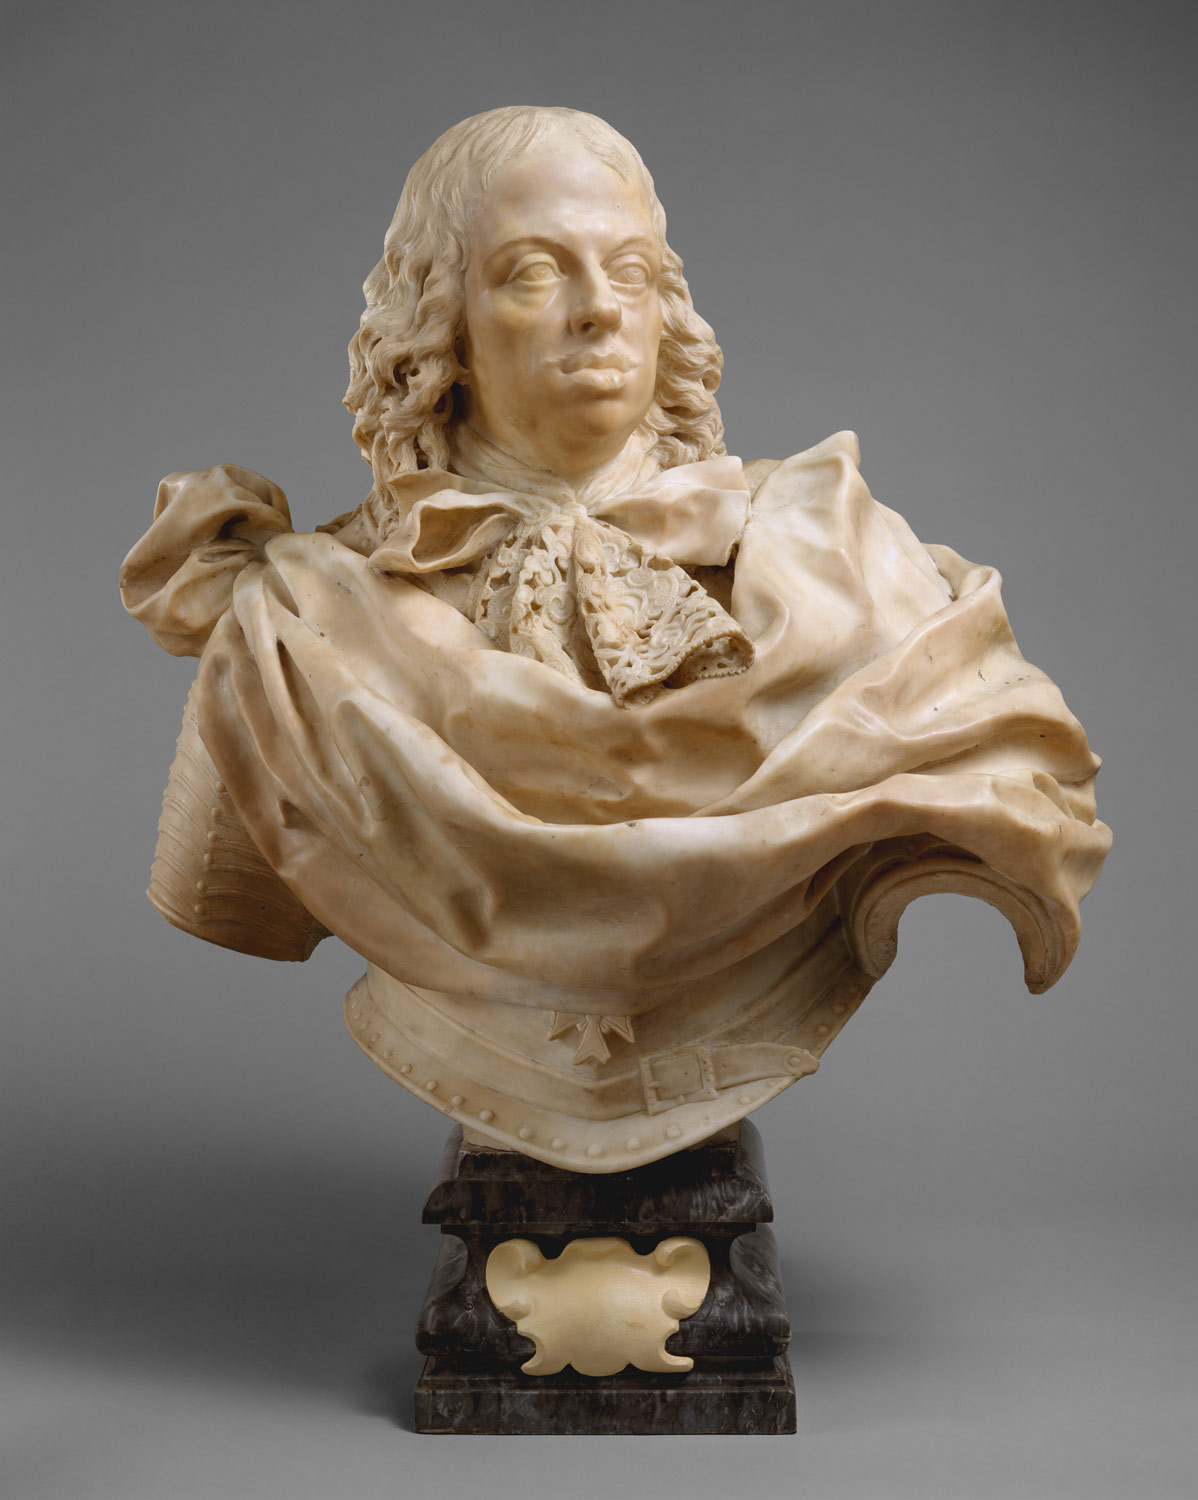 Cosimo III de Medici (1642–1723), Grand Duke of Tuscany